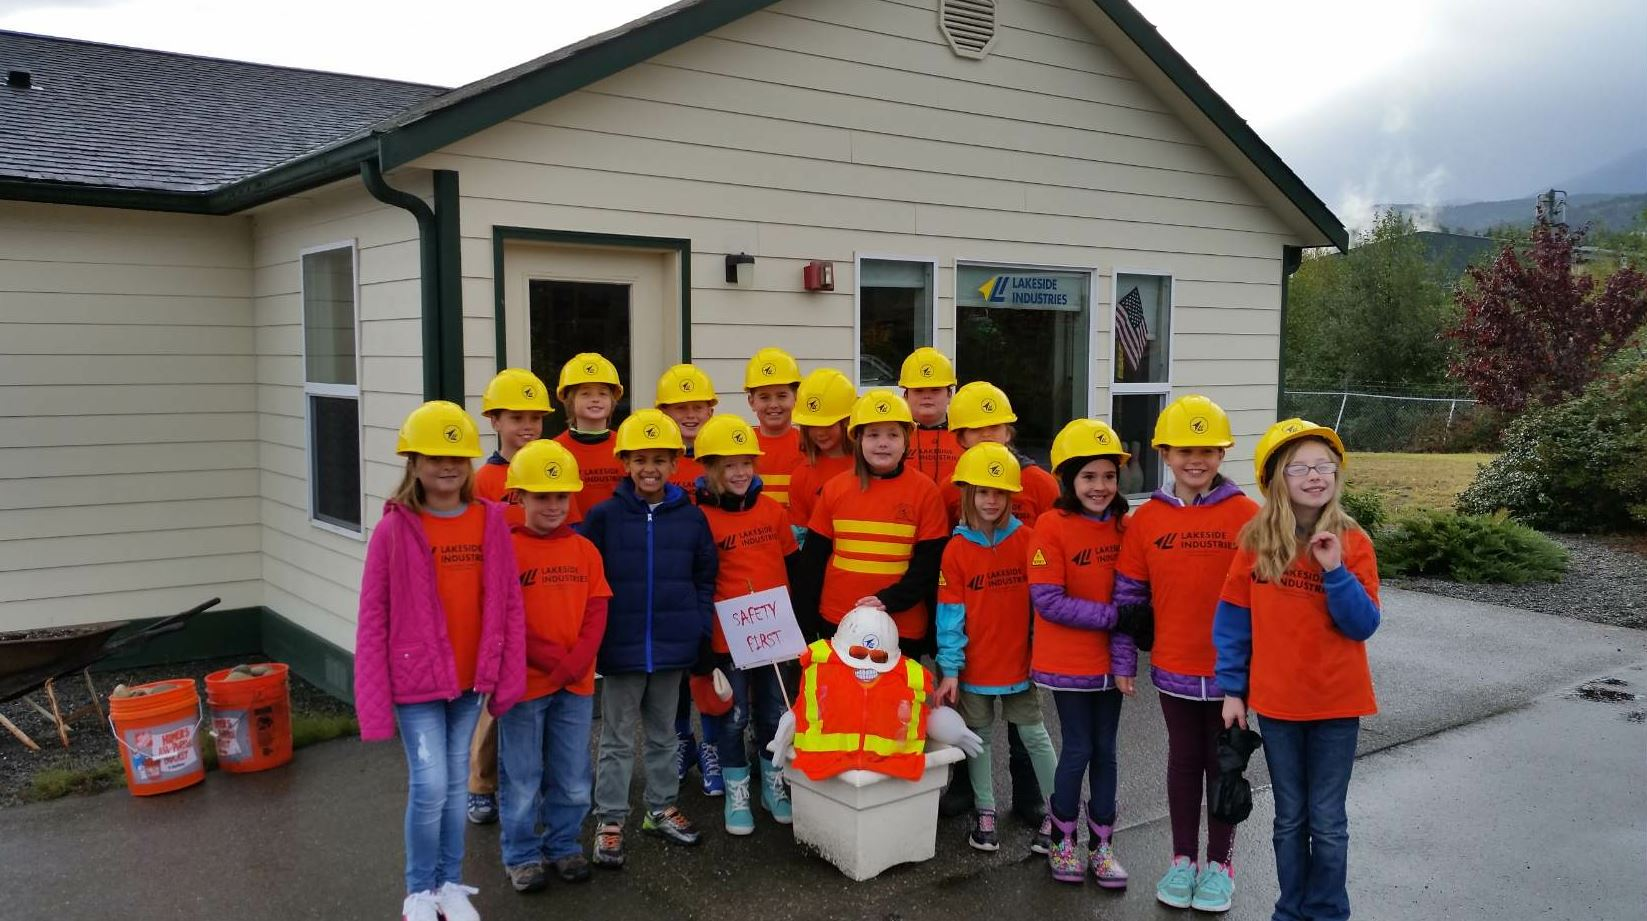 Young students stopped for a photo opp during a field trip to a Lakeside plant.